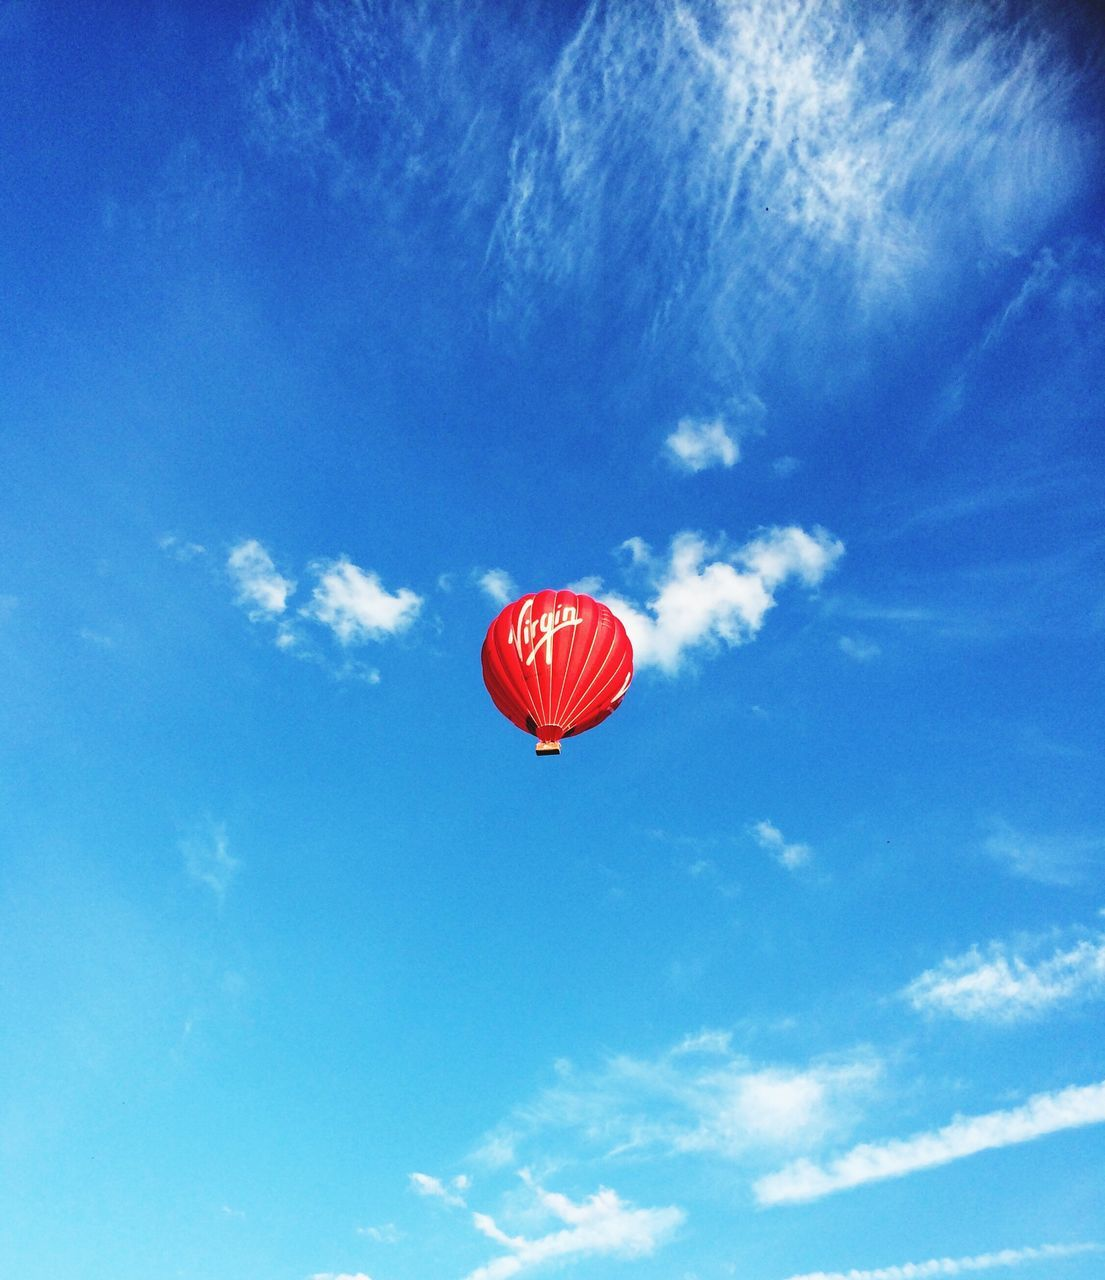 sky, low angle view, red, blue, cloud - sky, flying, mid-air, adventure, day, outdoors, nature, no people, beauty in nature, parachute